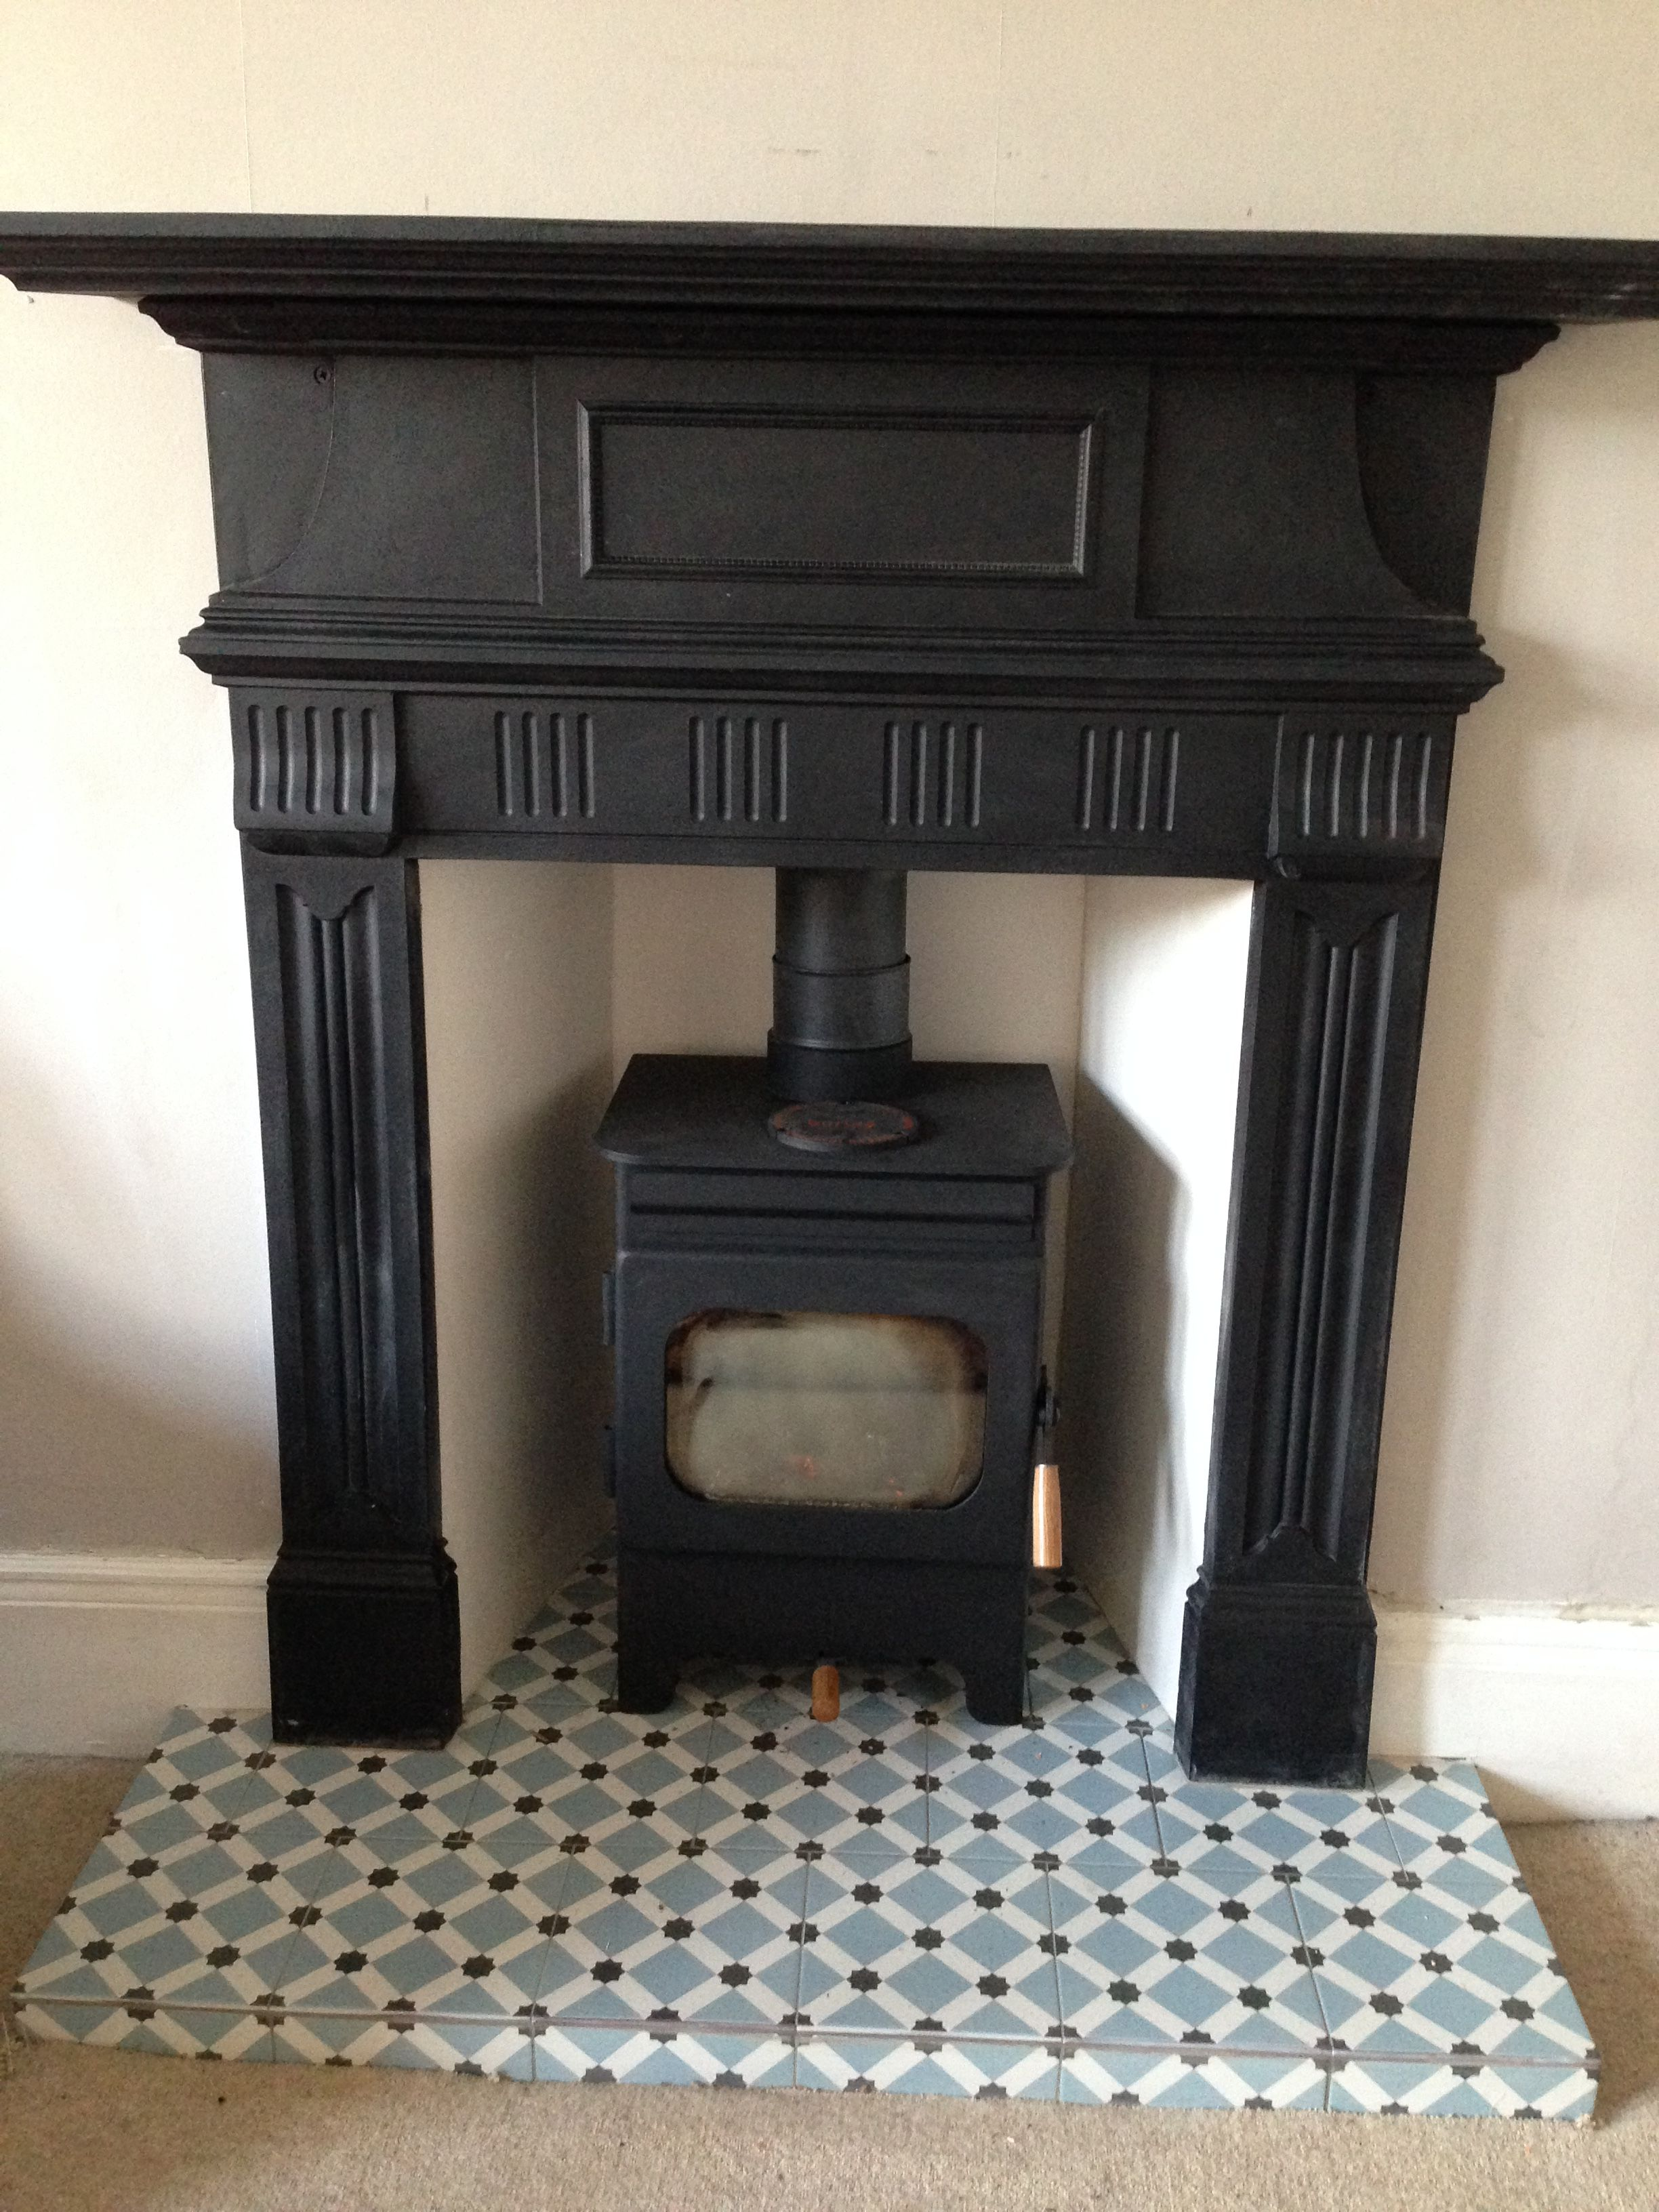 Heat Resistant Tile for Fireplace Fresh Debdale Wood Burning Fire Reclaimed Cast Iron Surround